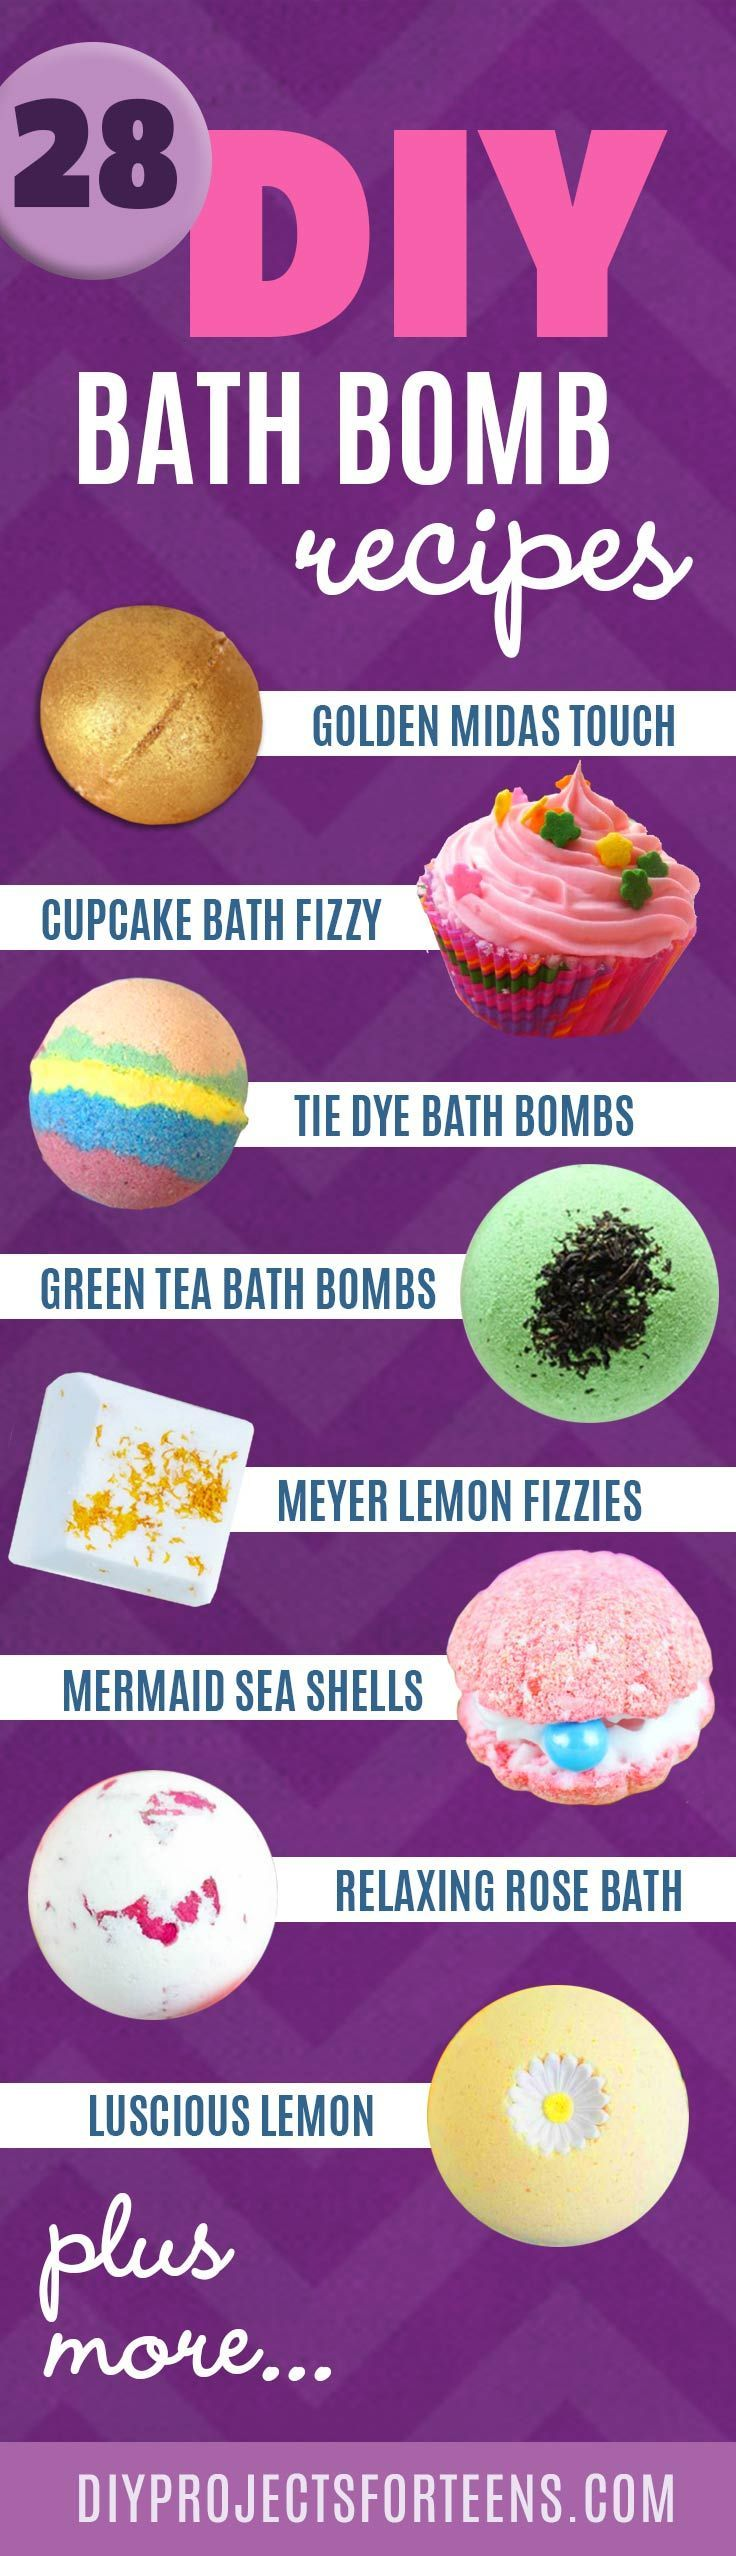 Homemade DIY Bath Bombs | Bath Bombs Tutorial and Recipes Like Lush | Pretty and Cheap DIY Gifts